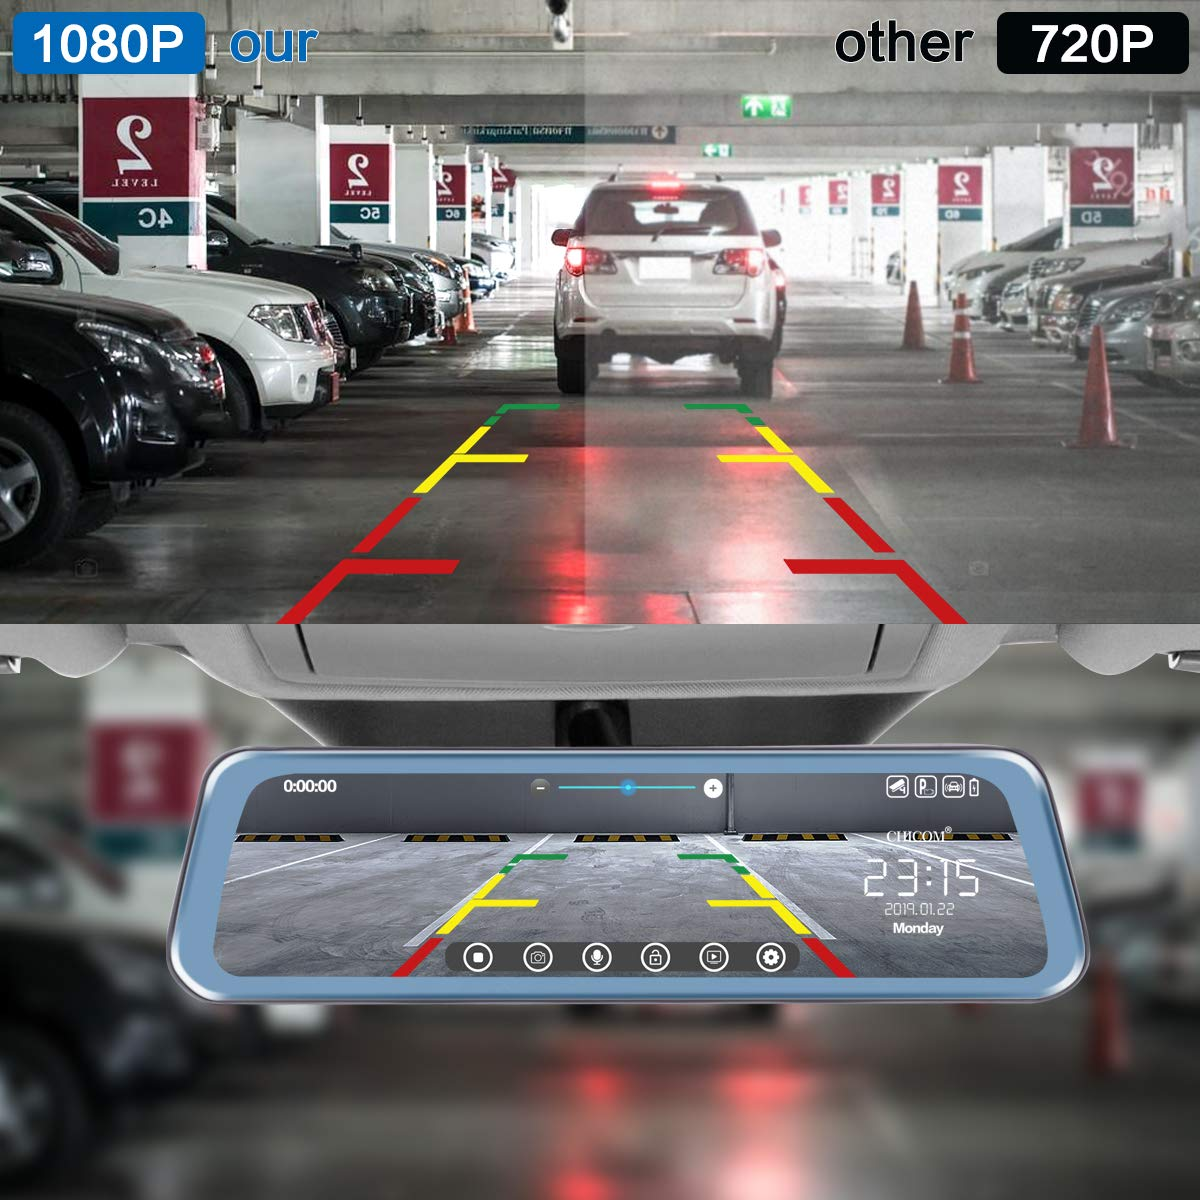 Mirror Dash Cam 9.66'' Dual Lens Full Touch Screen Stream Media Rear View Mirror Camera Made of Aluminum Alloy, 1080P 170°Front and 1080P 140°Backup Camera with Parking Monitor and G-Sensor by CHICOM (Image #4)